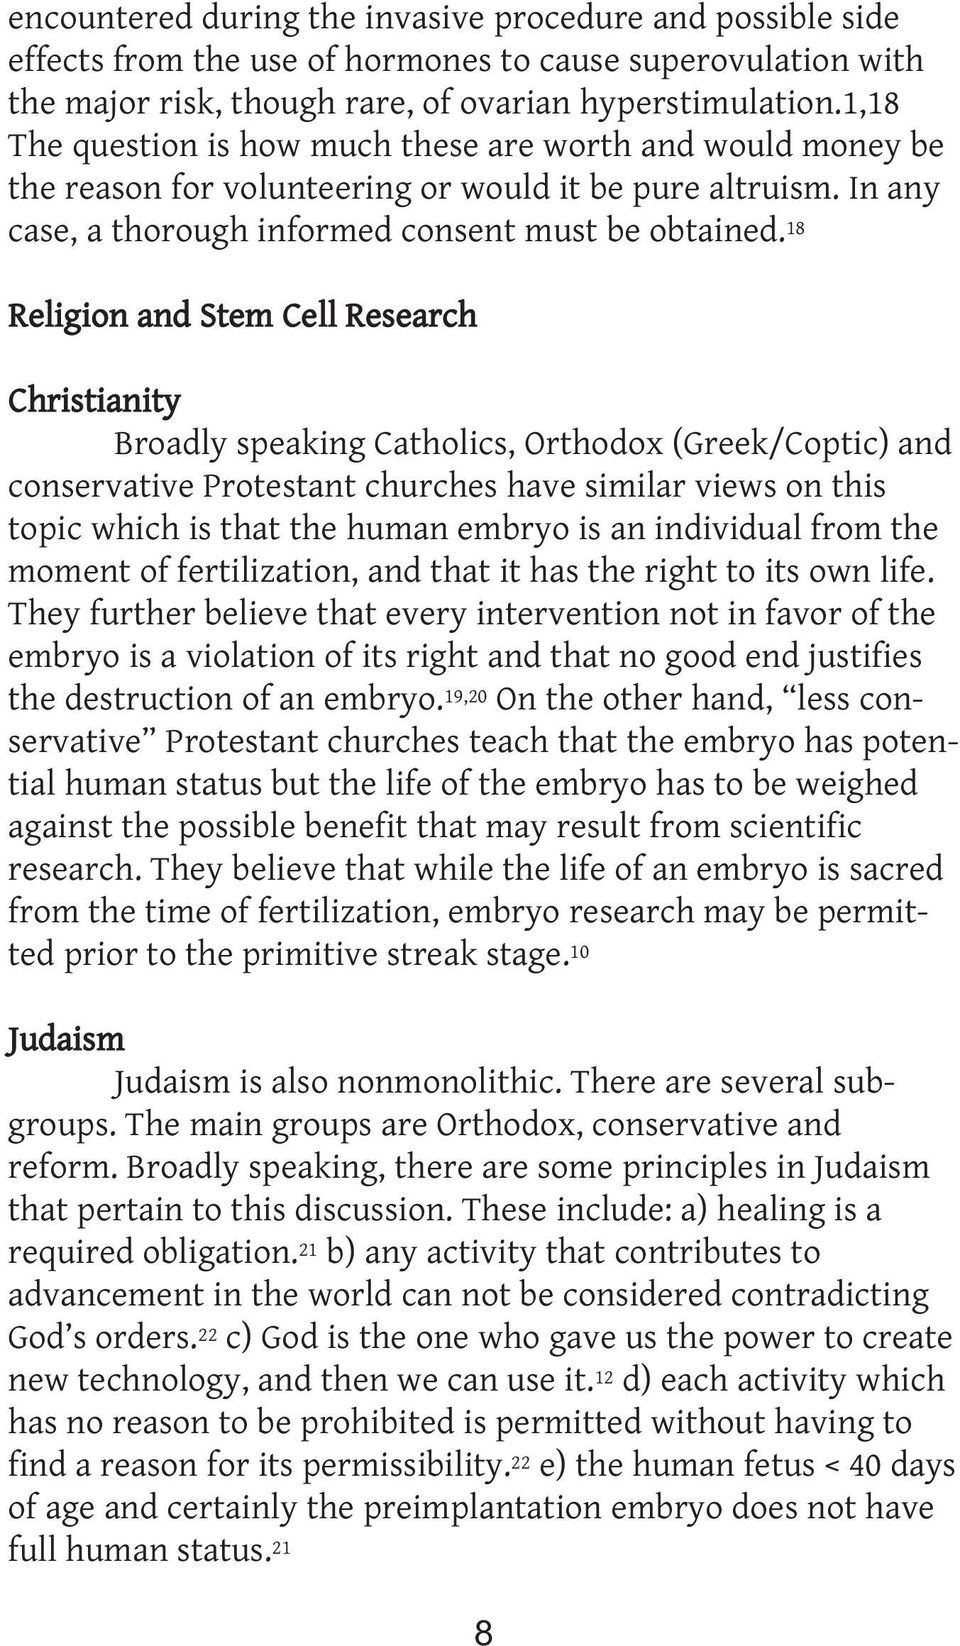 18 Religion and Stem Cell Research Christianity Broadly speaking Catholics, Orthodox (Greek/Coptic) and conservative Protestant churches have similar views on this topic which is that the human